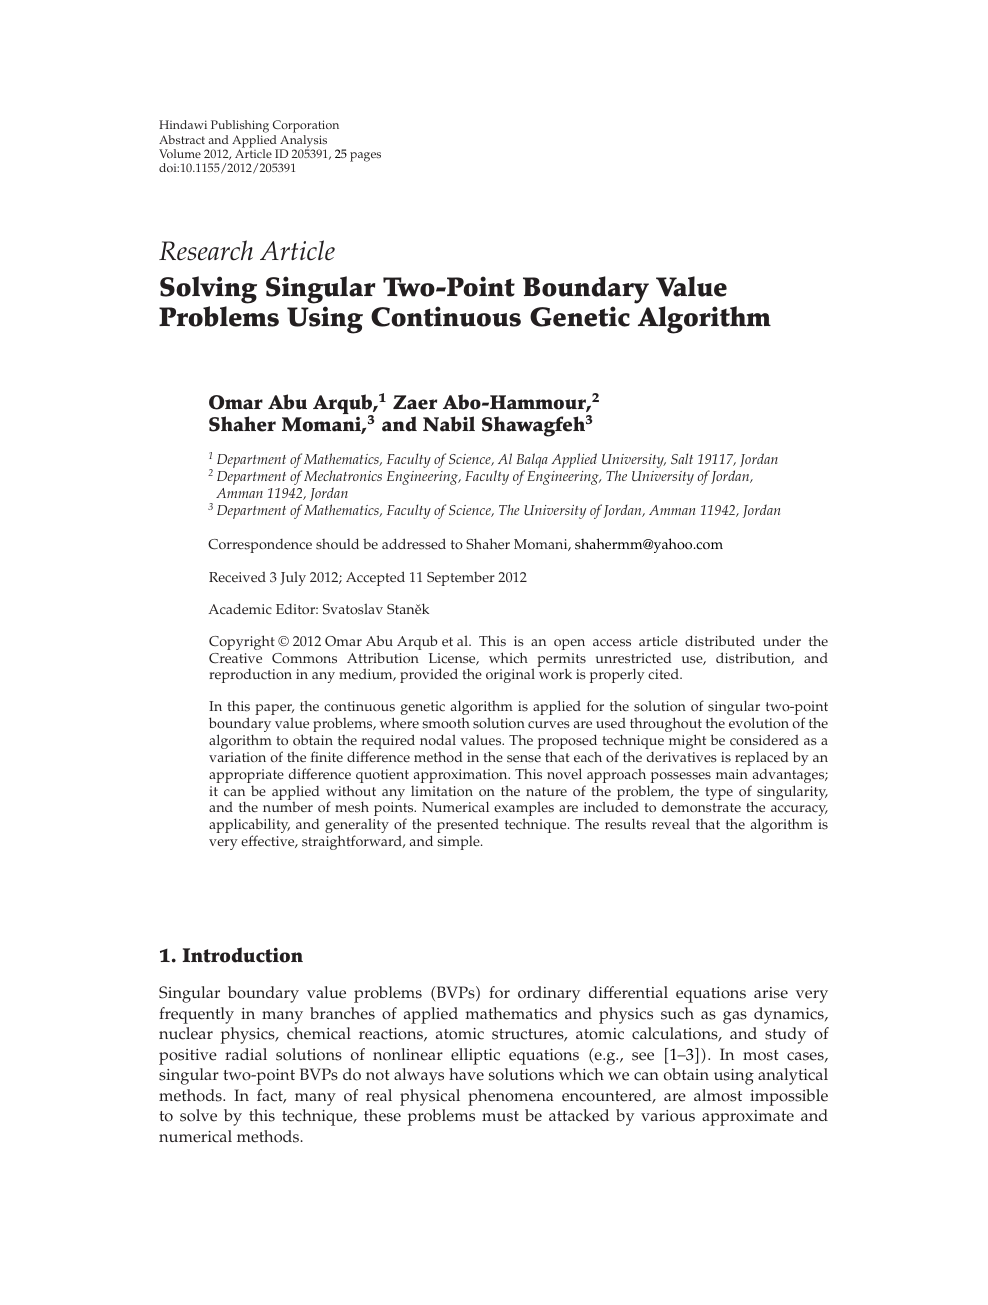 Solving Singular Two-Point Boundary Value Problems Using Continuous